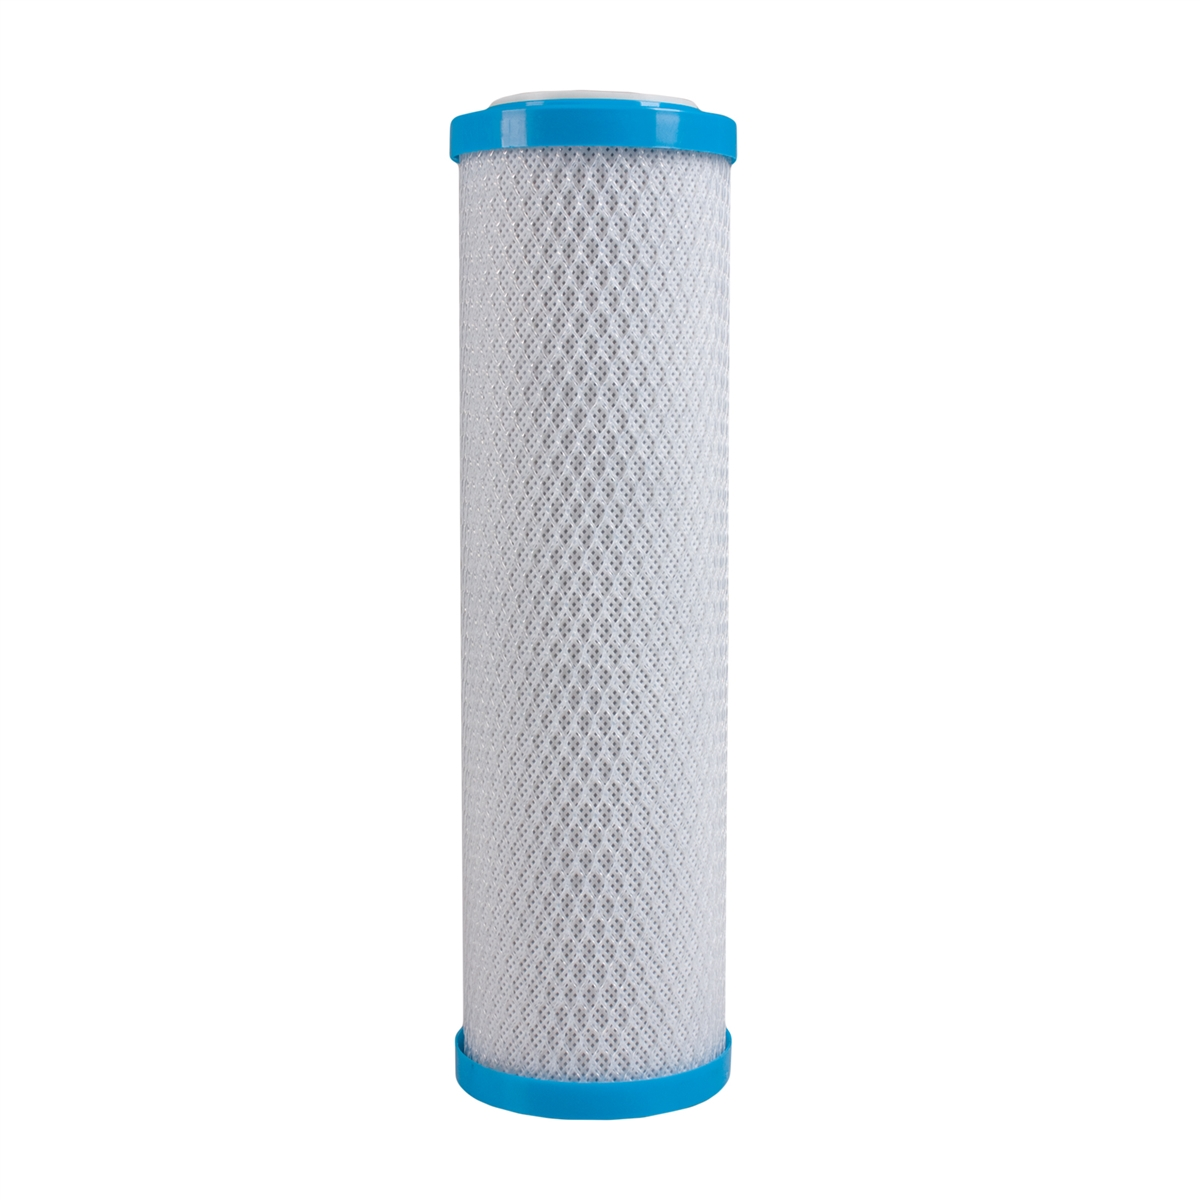 Nsf Carbon Block Filter 4 5 Quot X 20 Quot 10 Micron Box Of 6